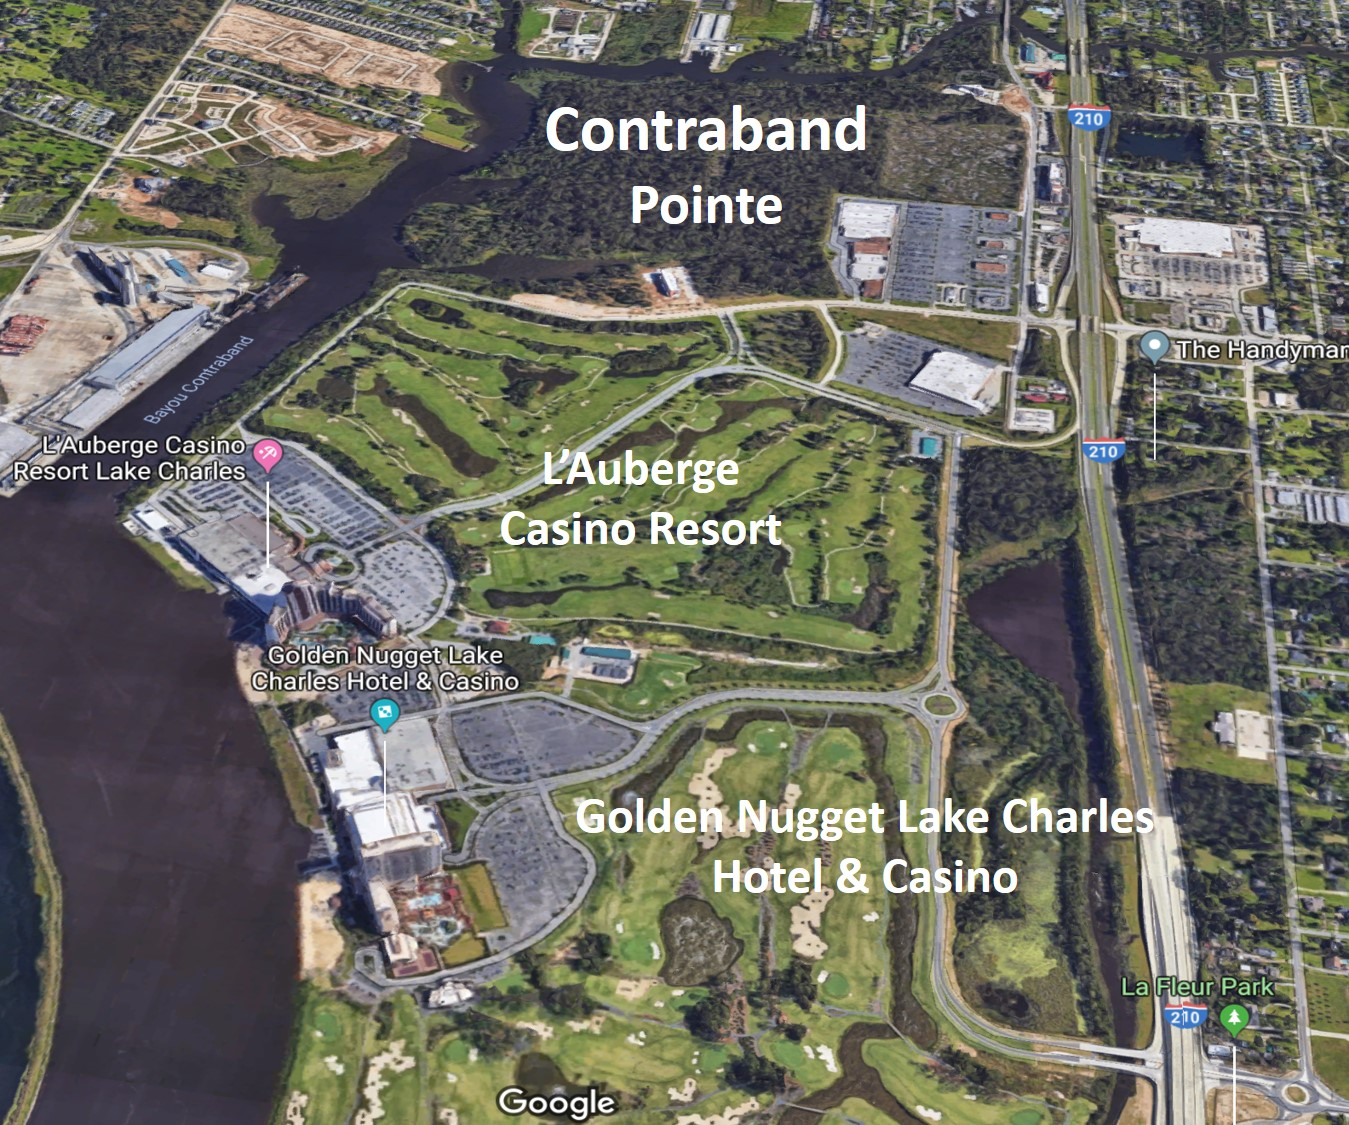 Contraband Point's proximity to Casinos